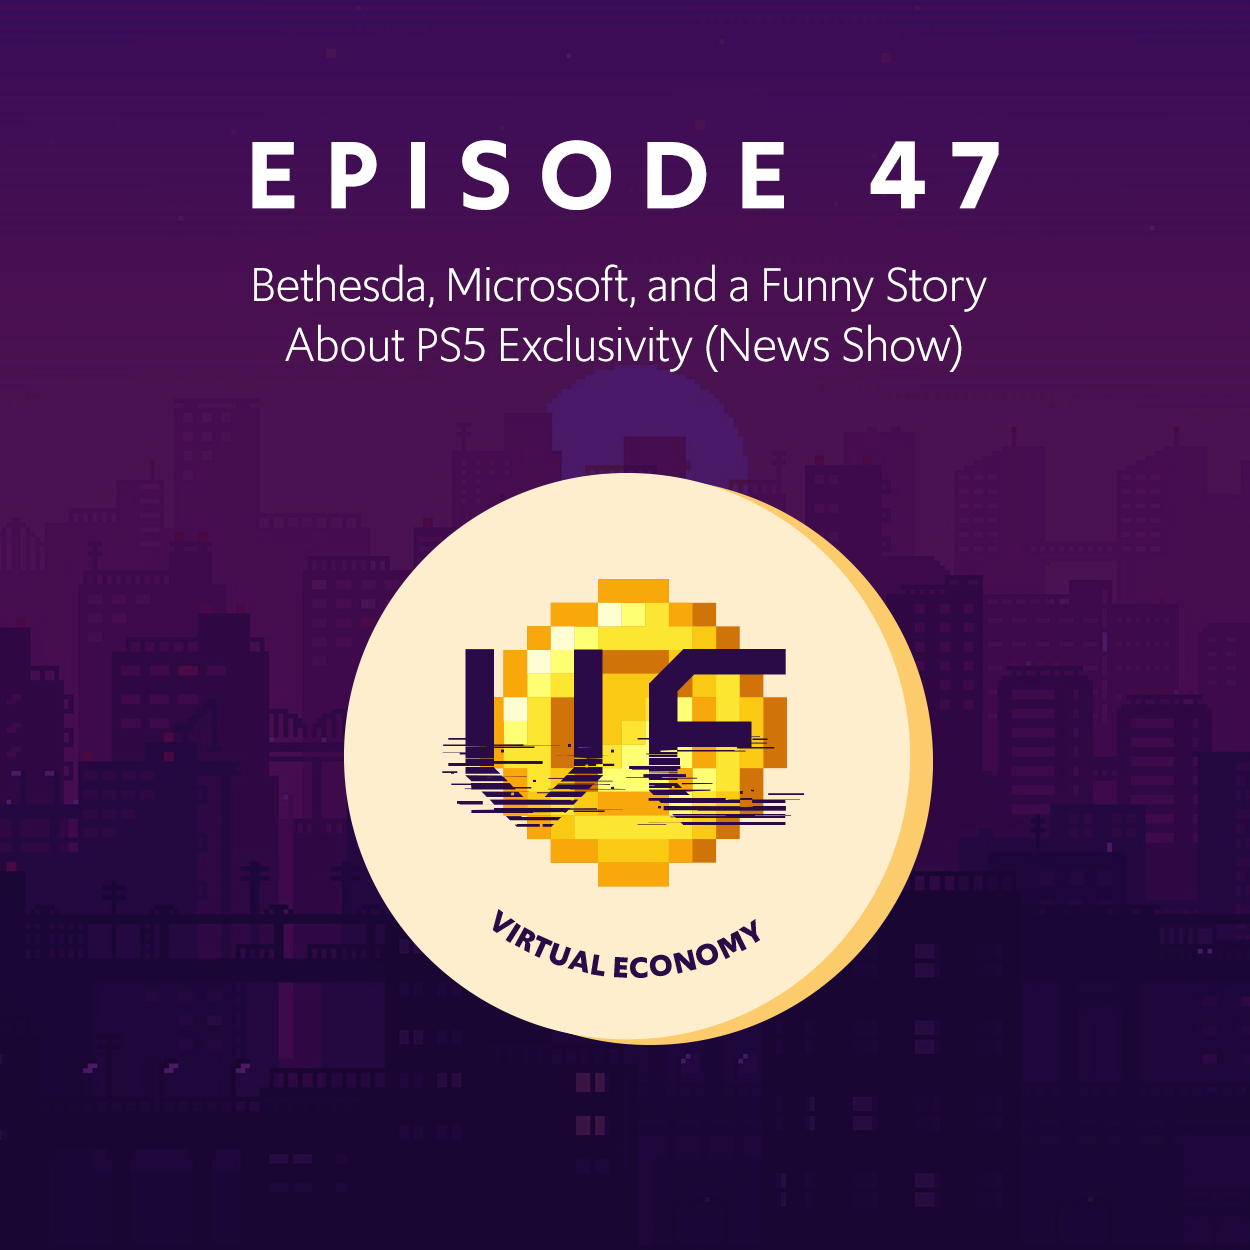 Episode 47: Bethesda, Microsoft, and a Funny Story About PS5 Exclusivity (News Show) show art